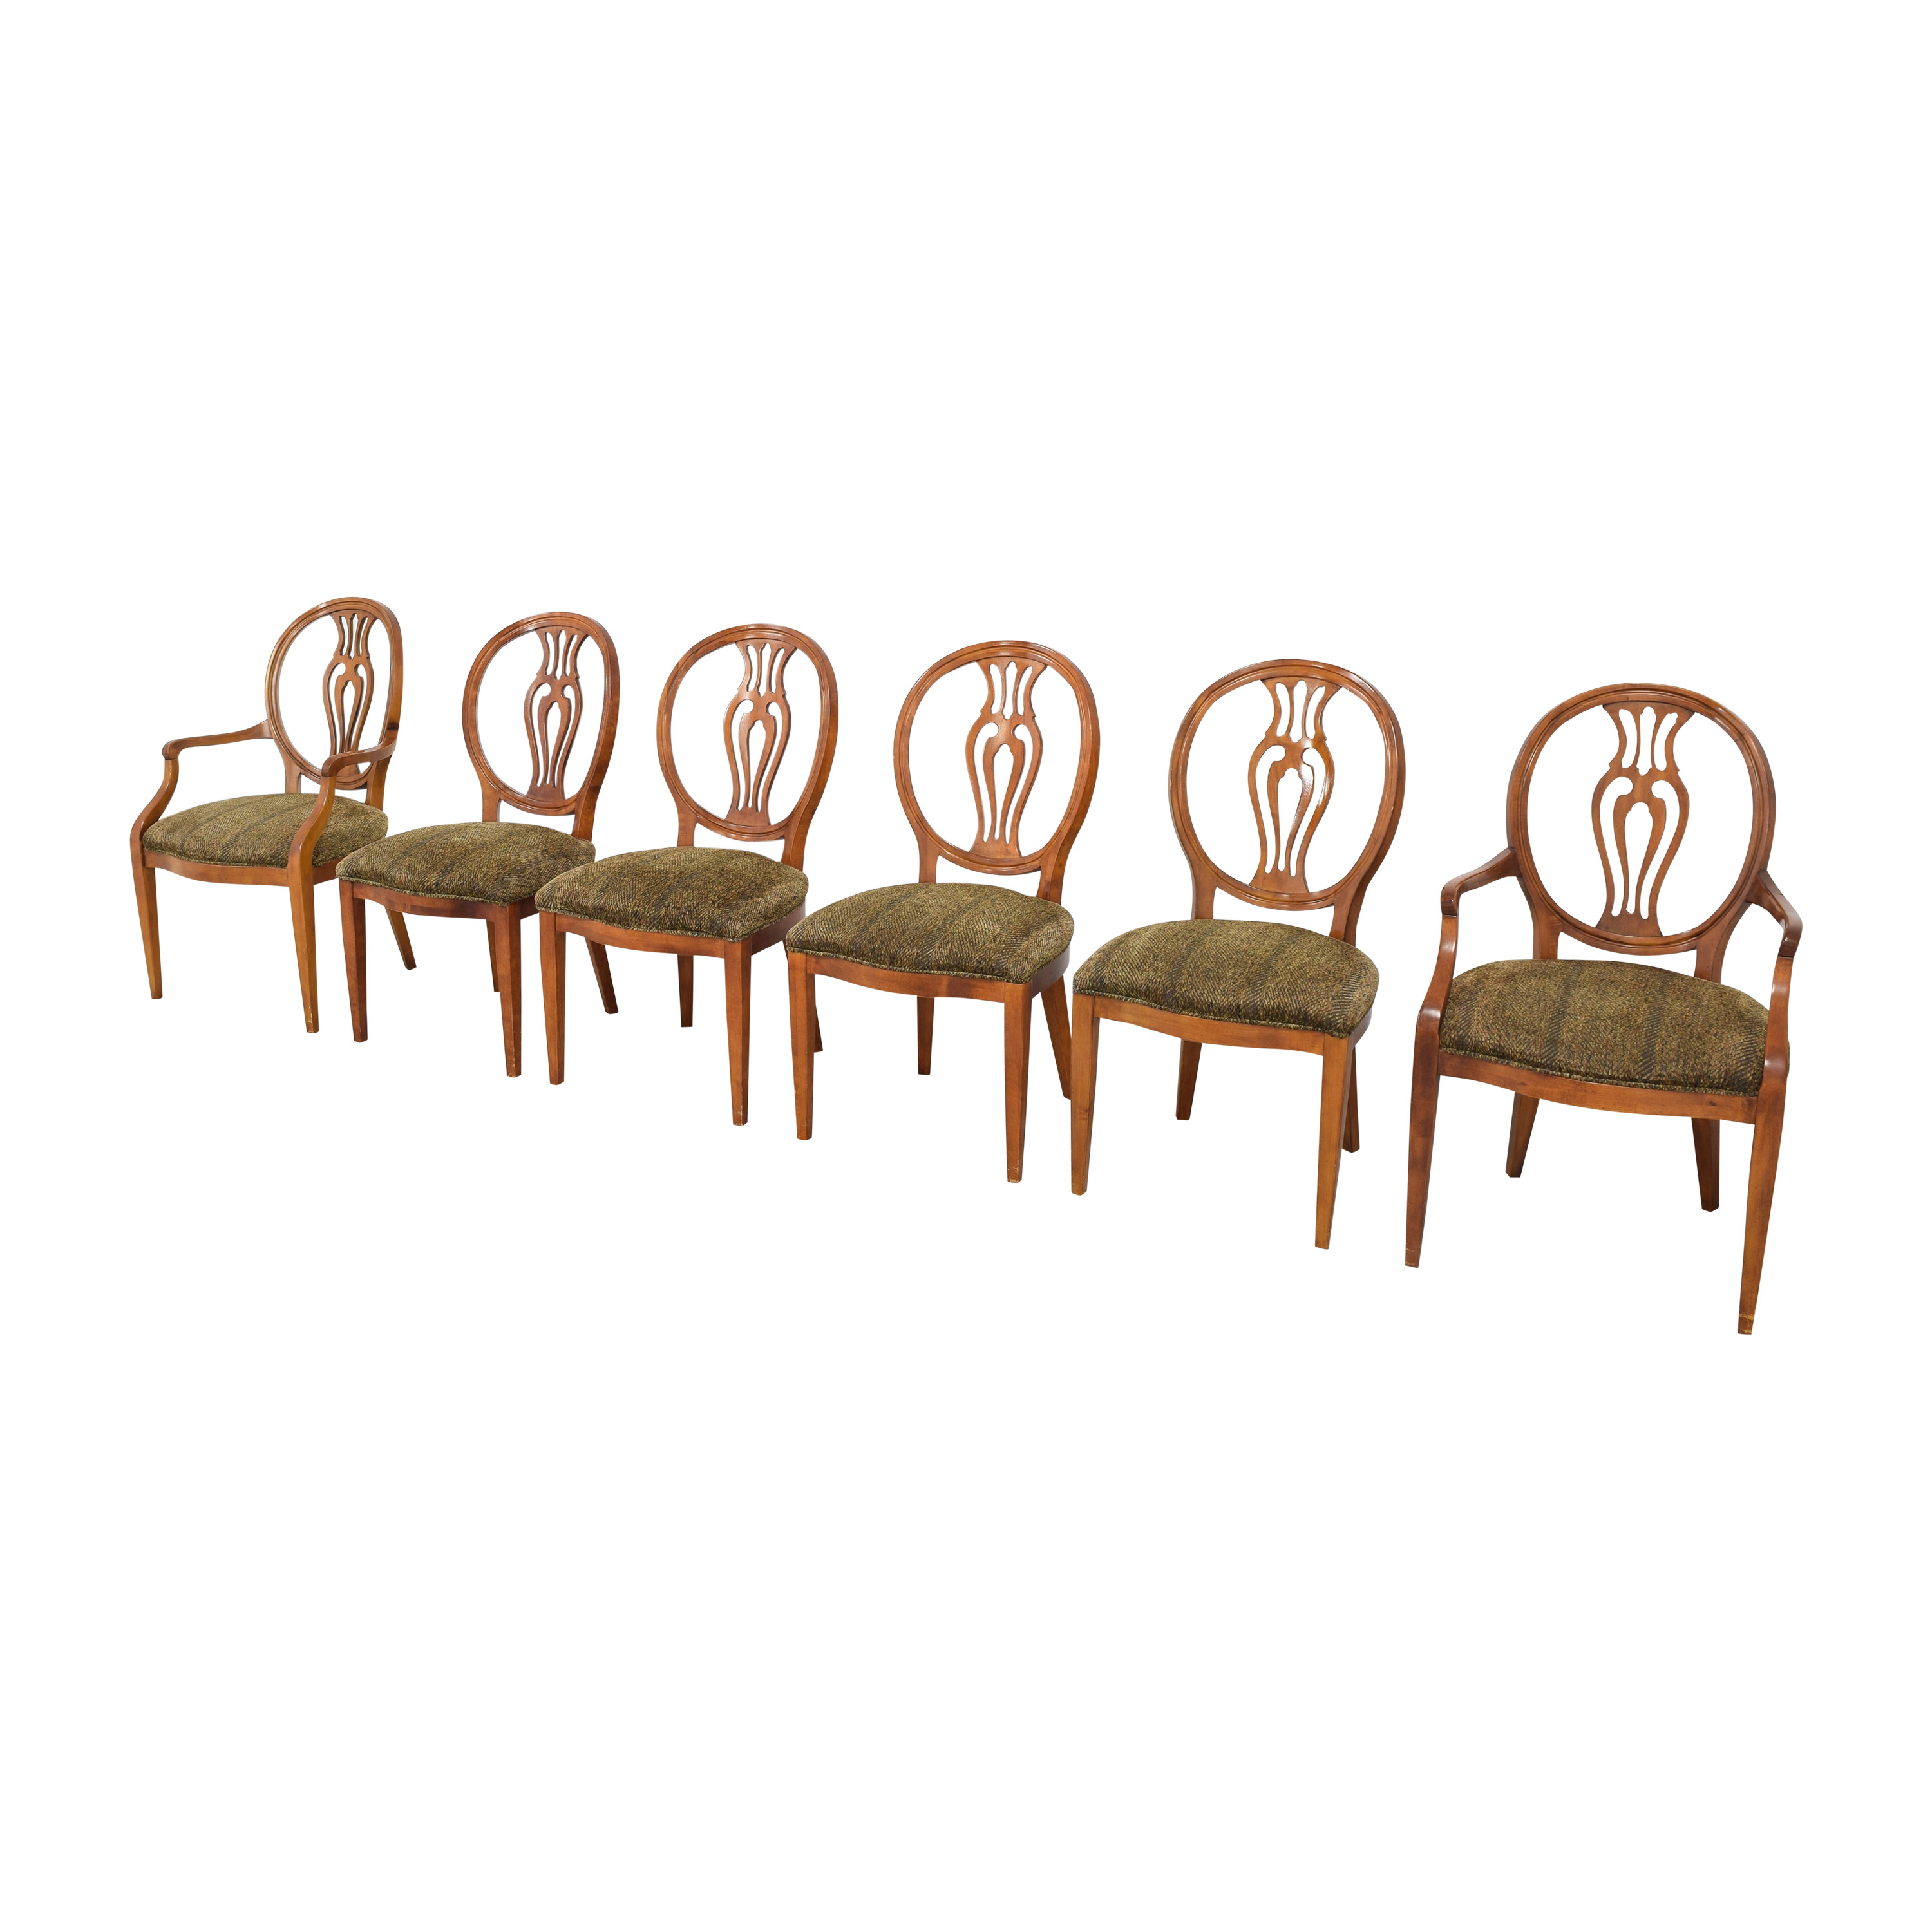 Herendon French Pierce Balloon Back Dining Chairs Henredon Furniture